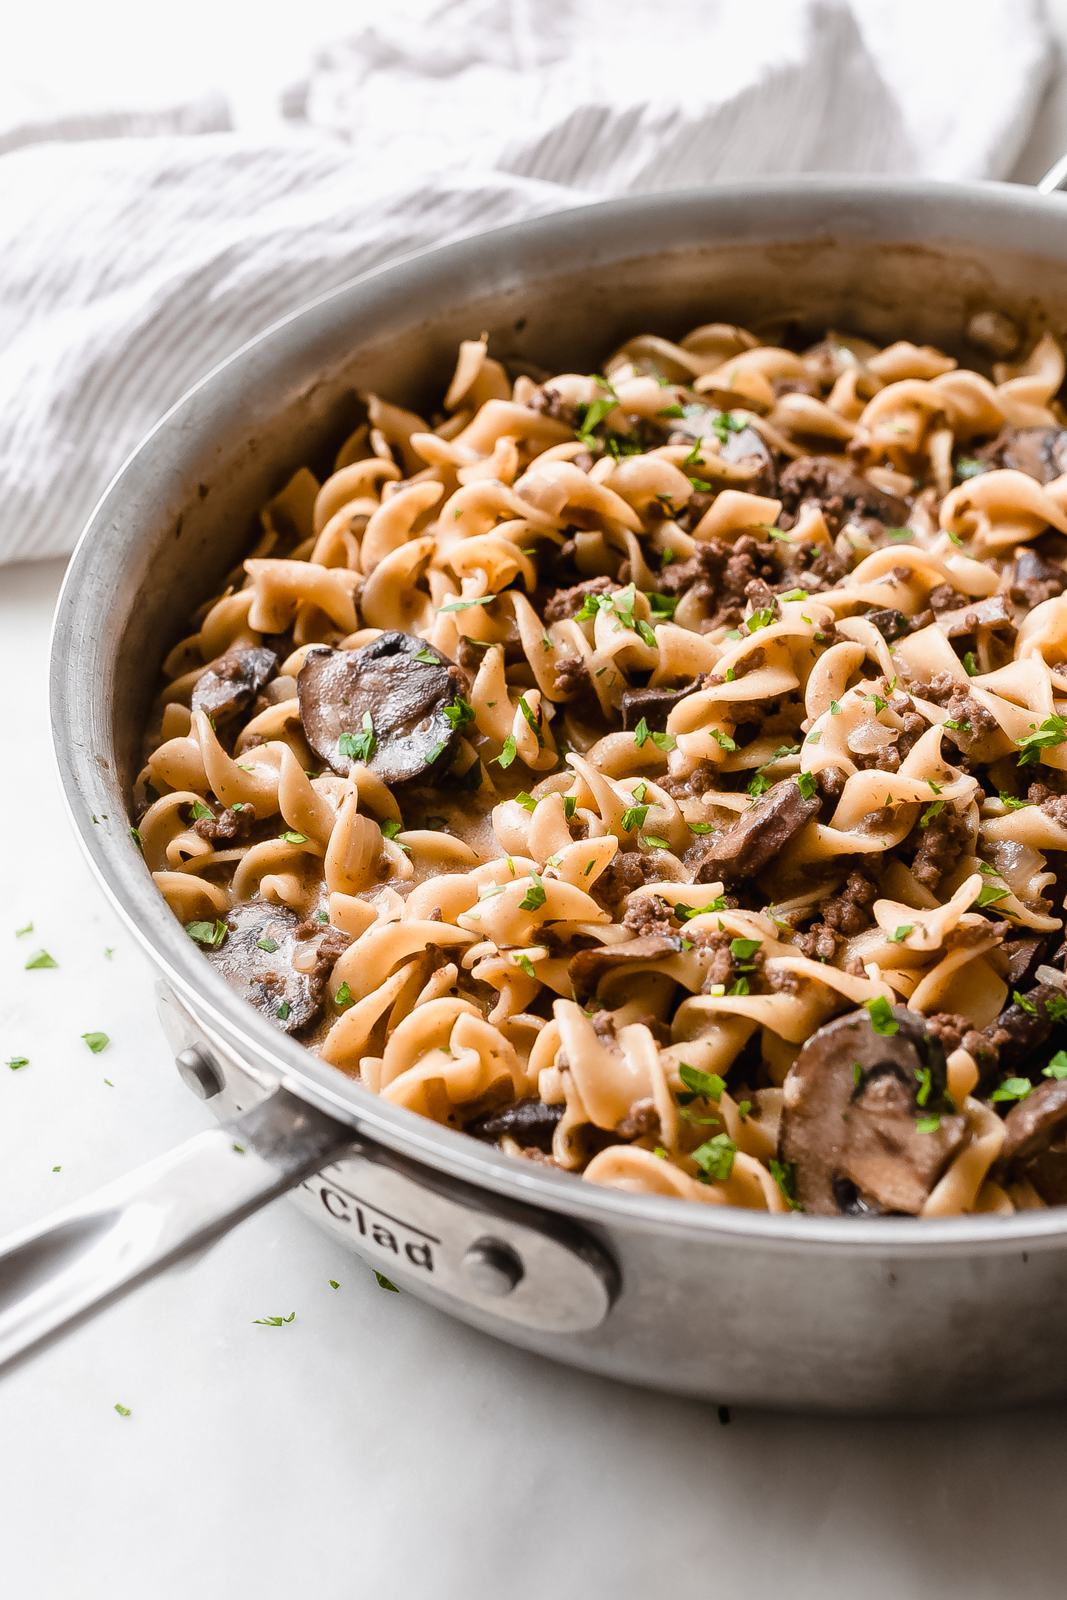 side view of skillet with egg noodles, mushrooms, and ground beef in brown cream sauce